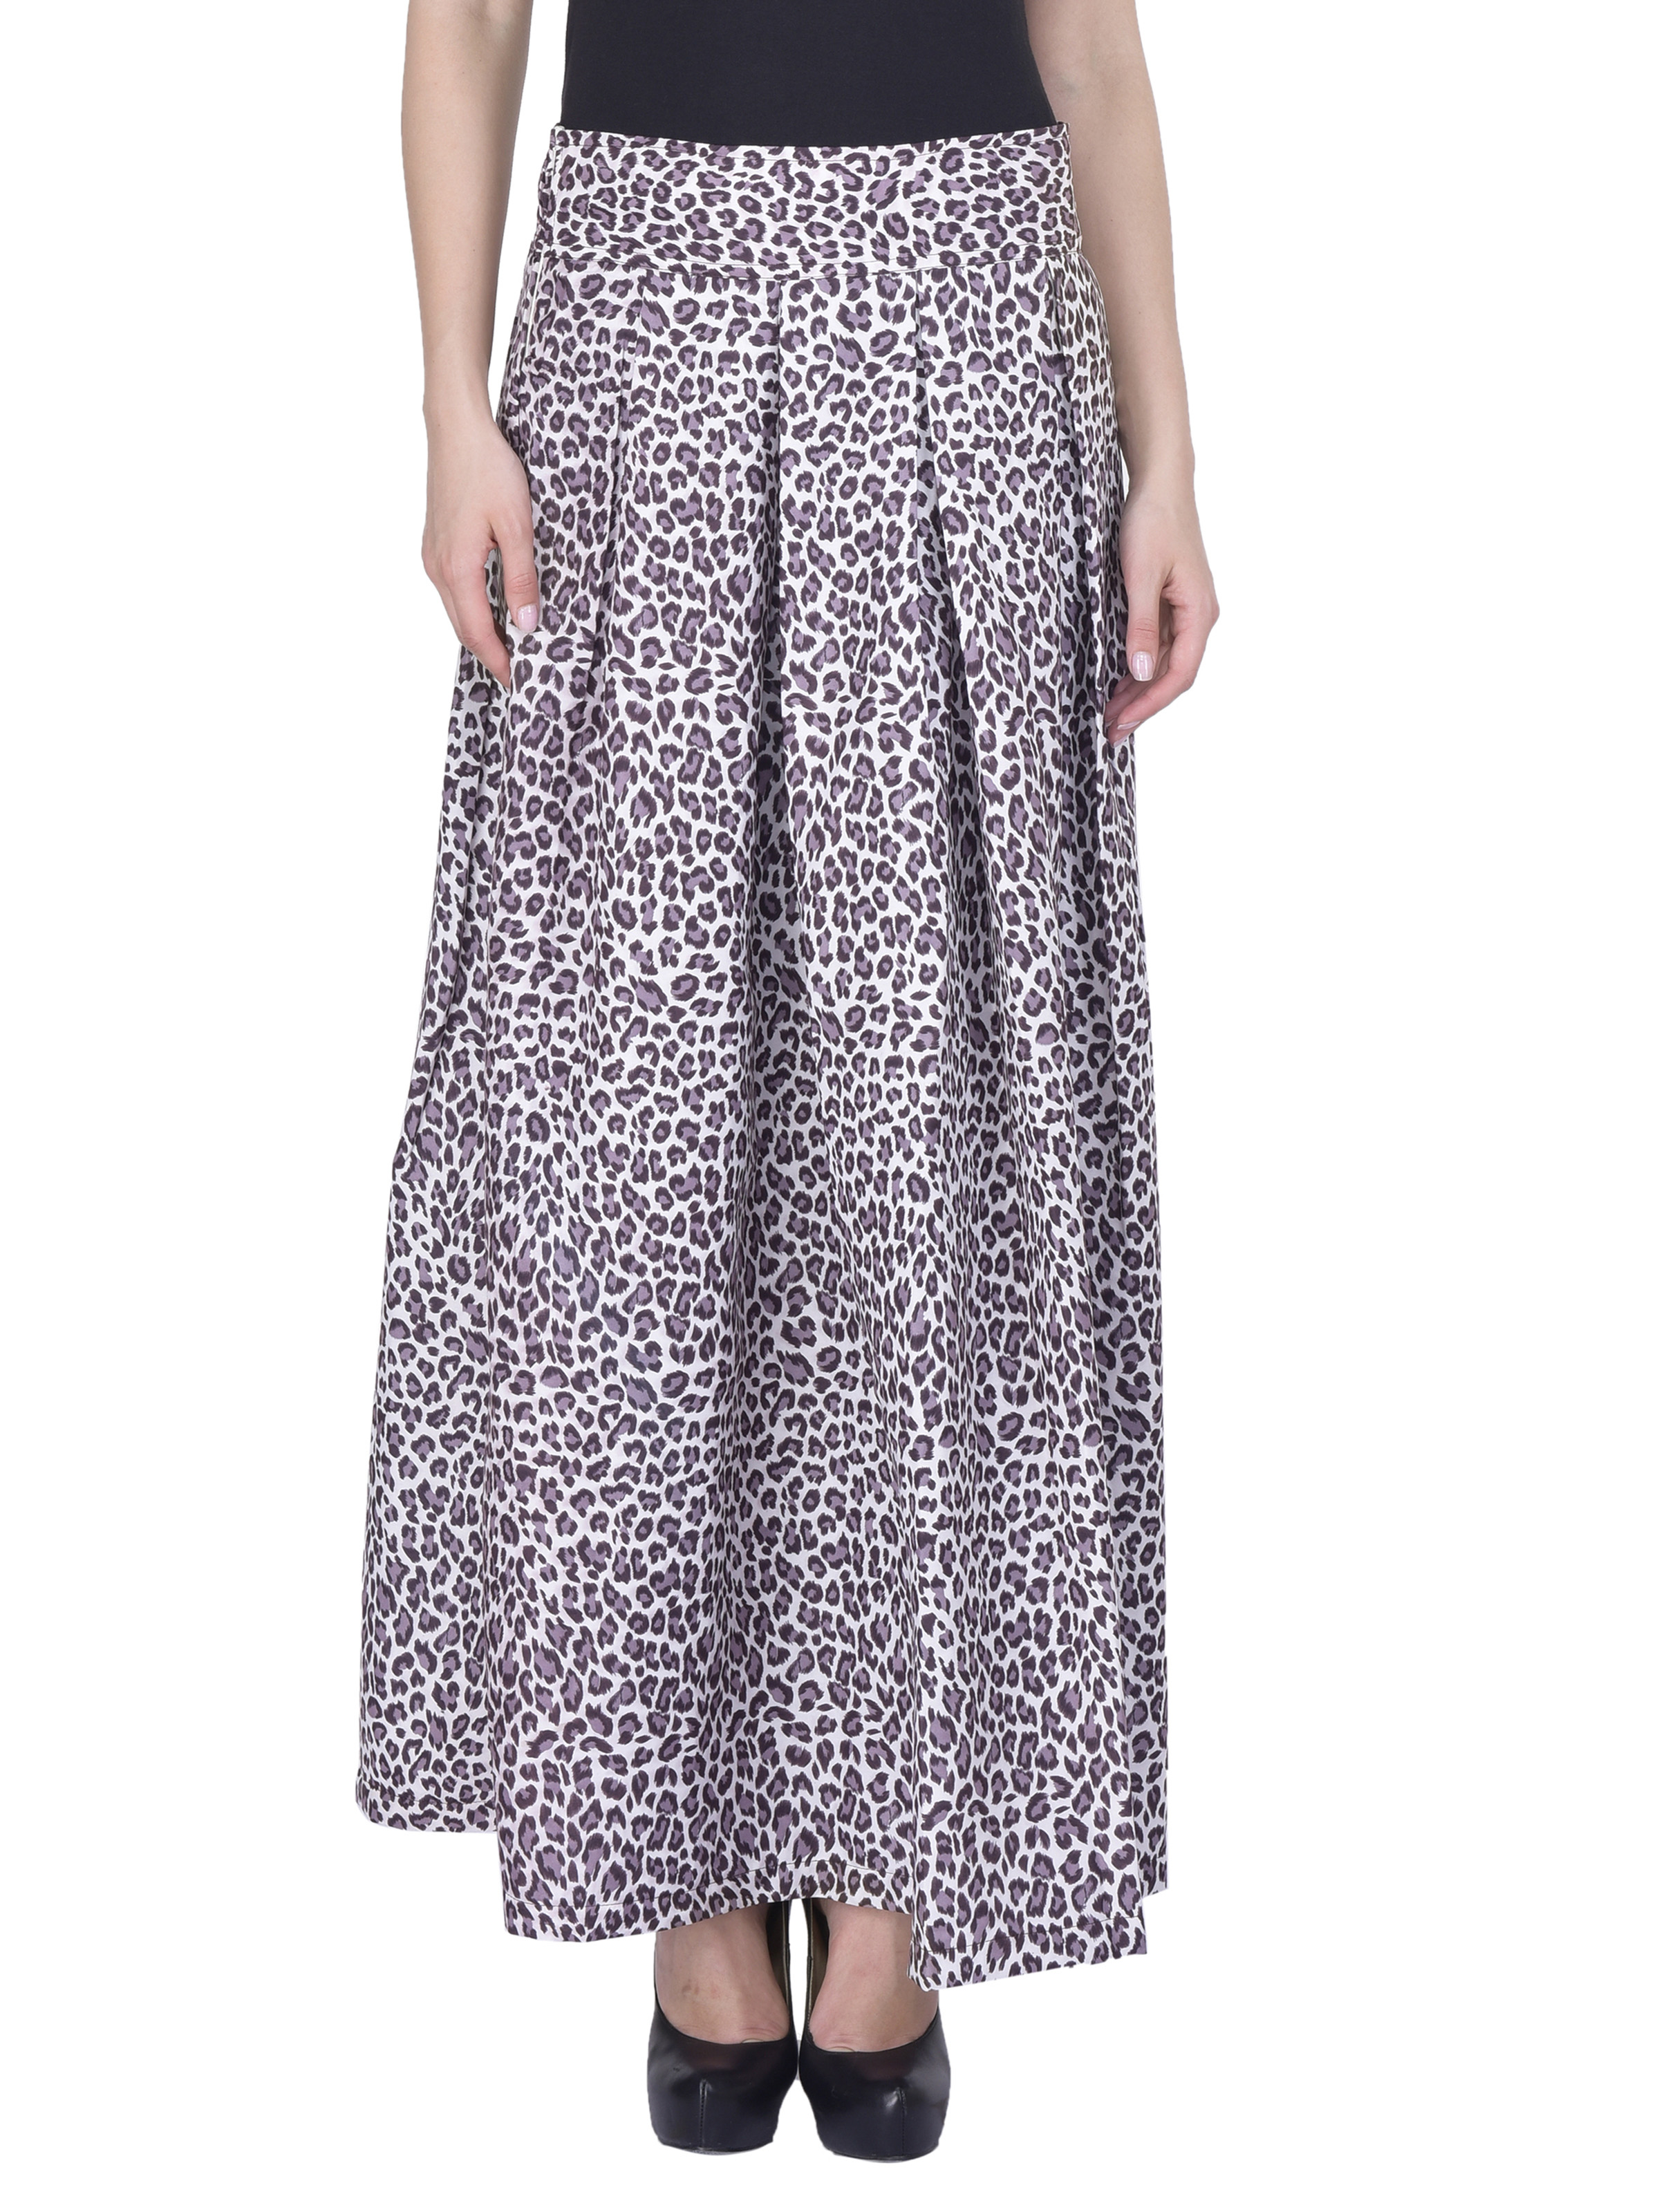 chicflic2 Women Floral Maxi Pleated Skirt Sk164d